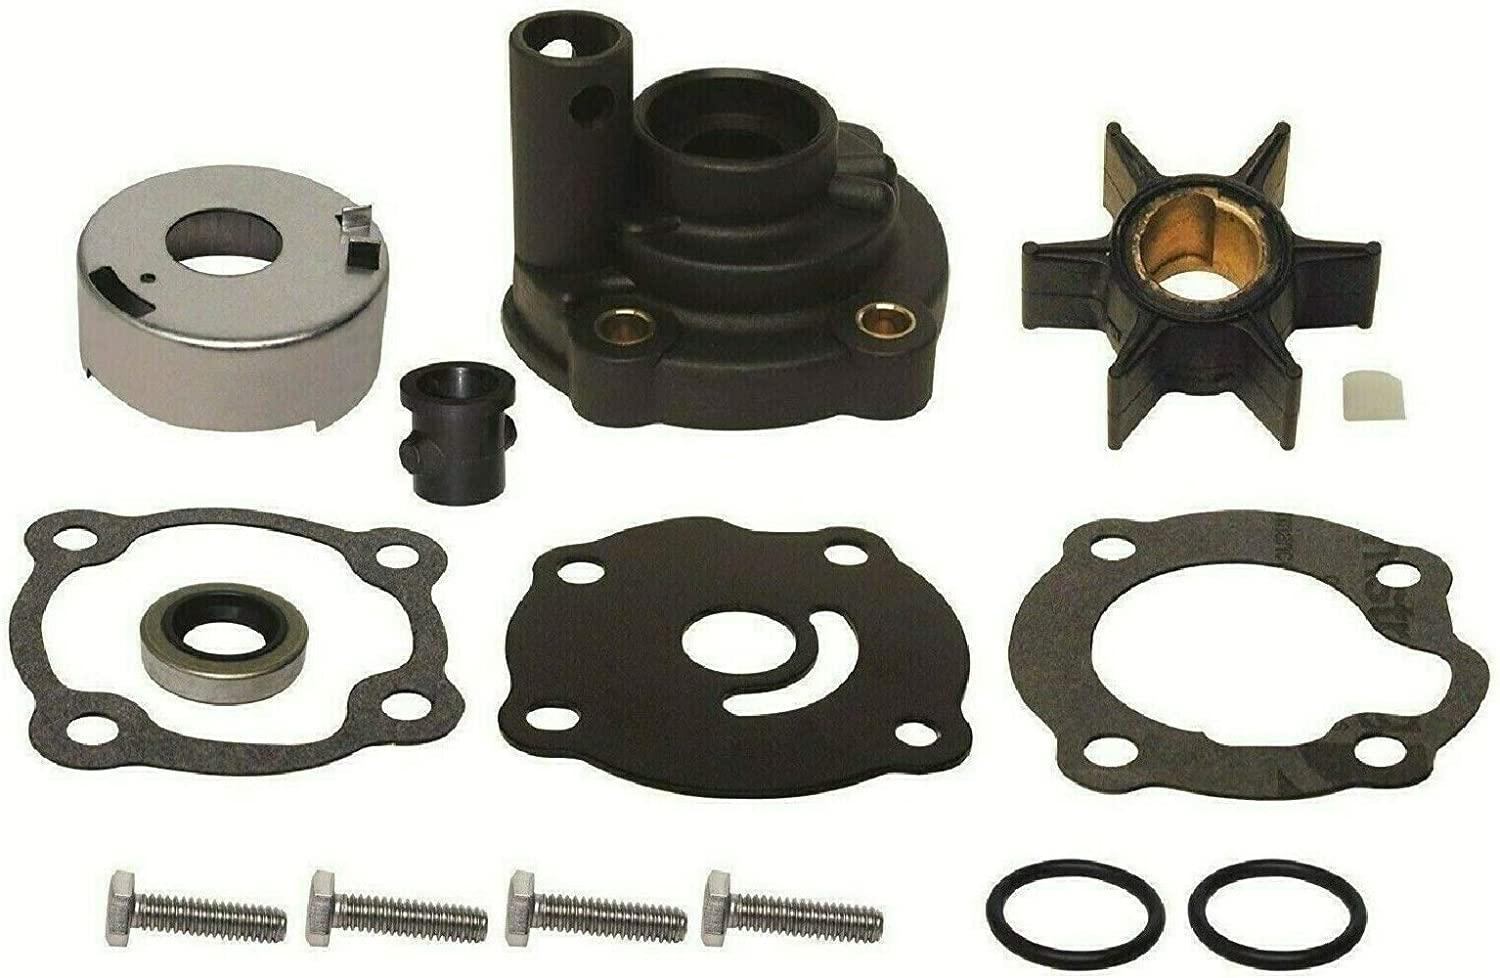 GLM Water Pump Impeller Kit with Housing for Johnson Evinrude 20, 25, 28 Hp 1979-1984 Replaces 395270, 18-3383 Read Item Description for Applications